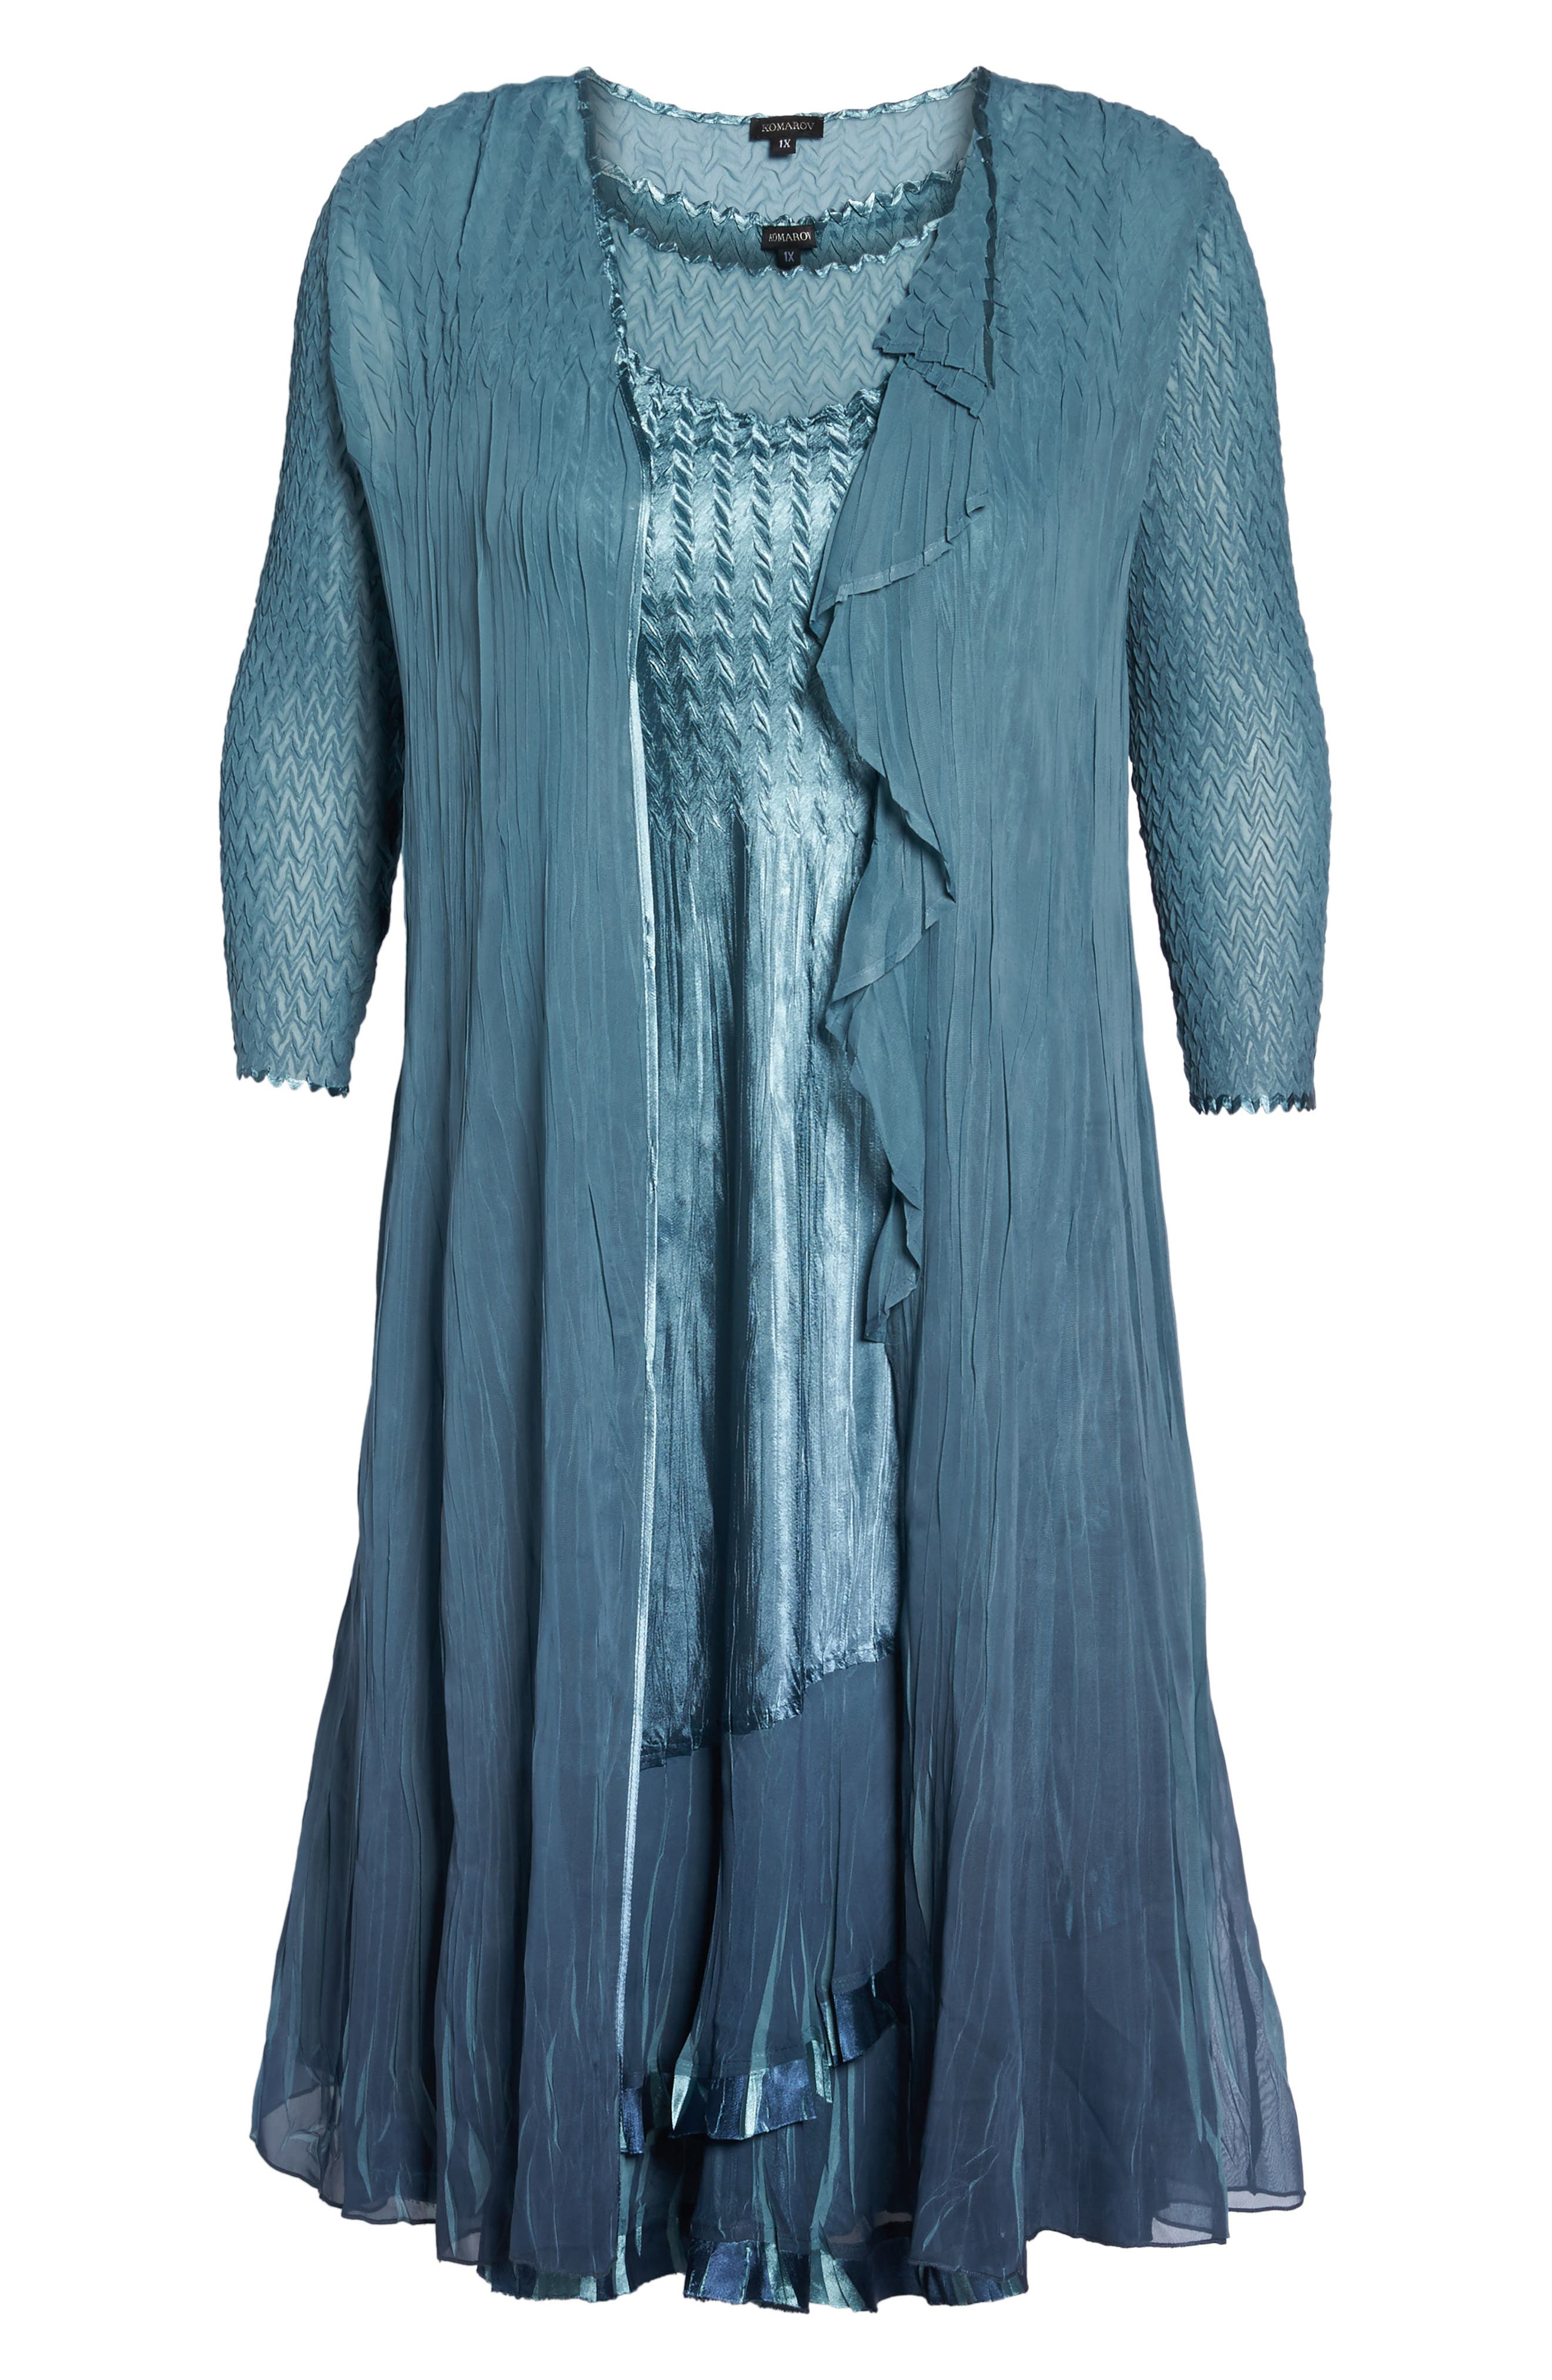 Tiered Dress with Jacket,                             Alternate thumbnail 6, color,                             405